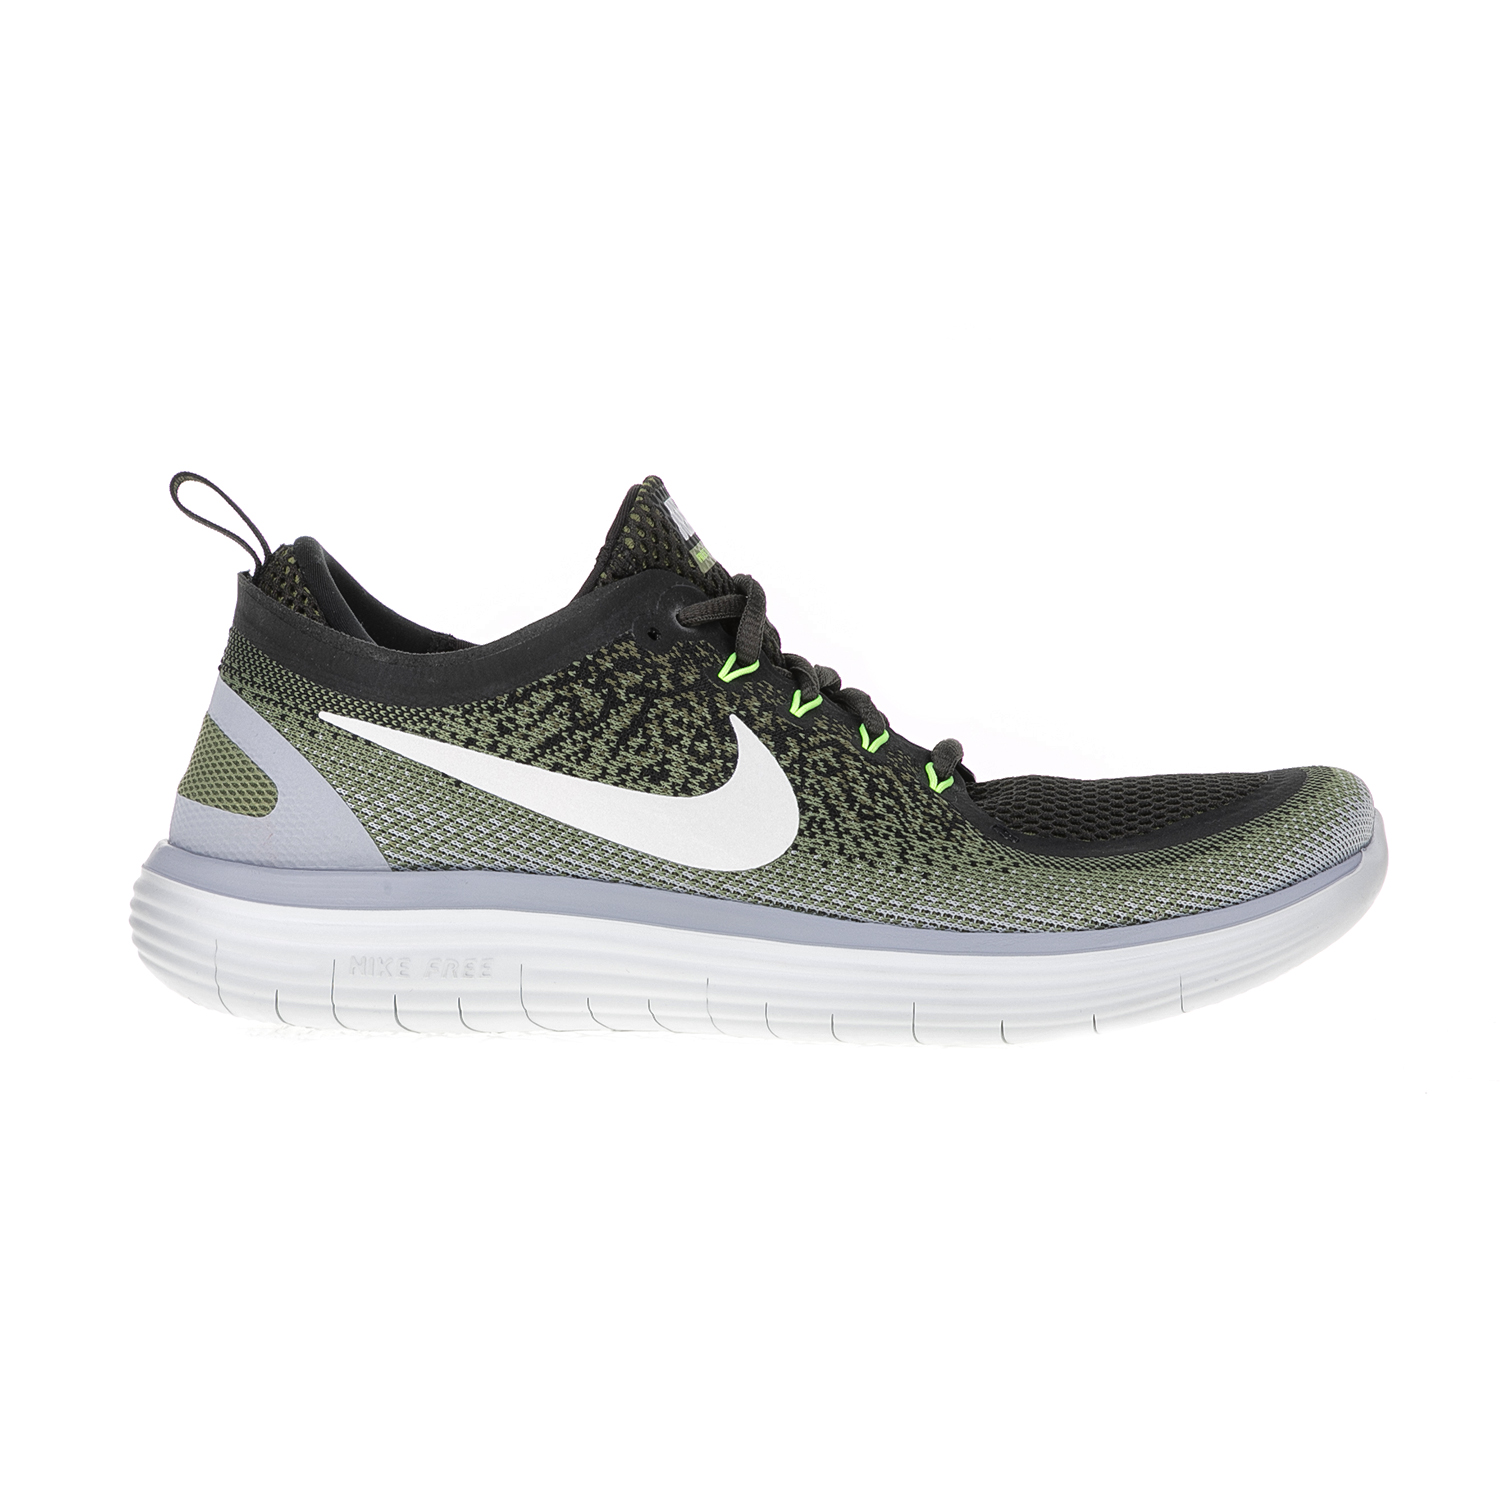 e983be9a042 NIKE – Ανδρικά παπούτσια τρεξίματος NIKE FREE RN DISTANCE 2 χακί.  Factoryoutlet